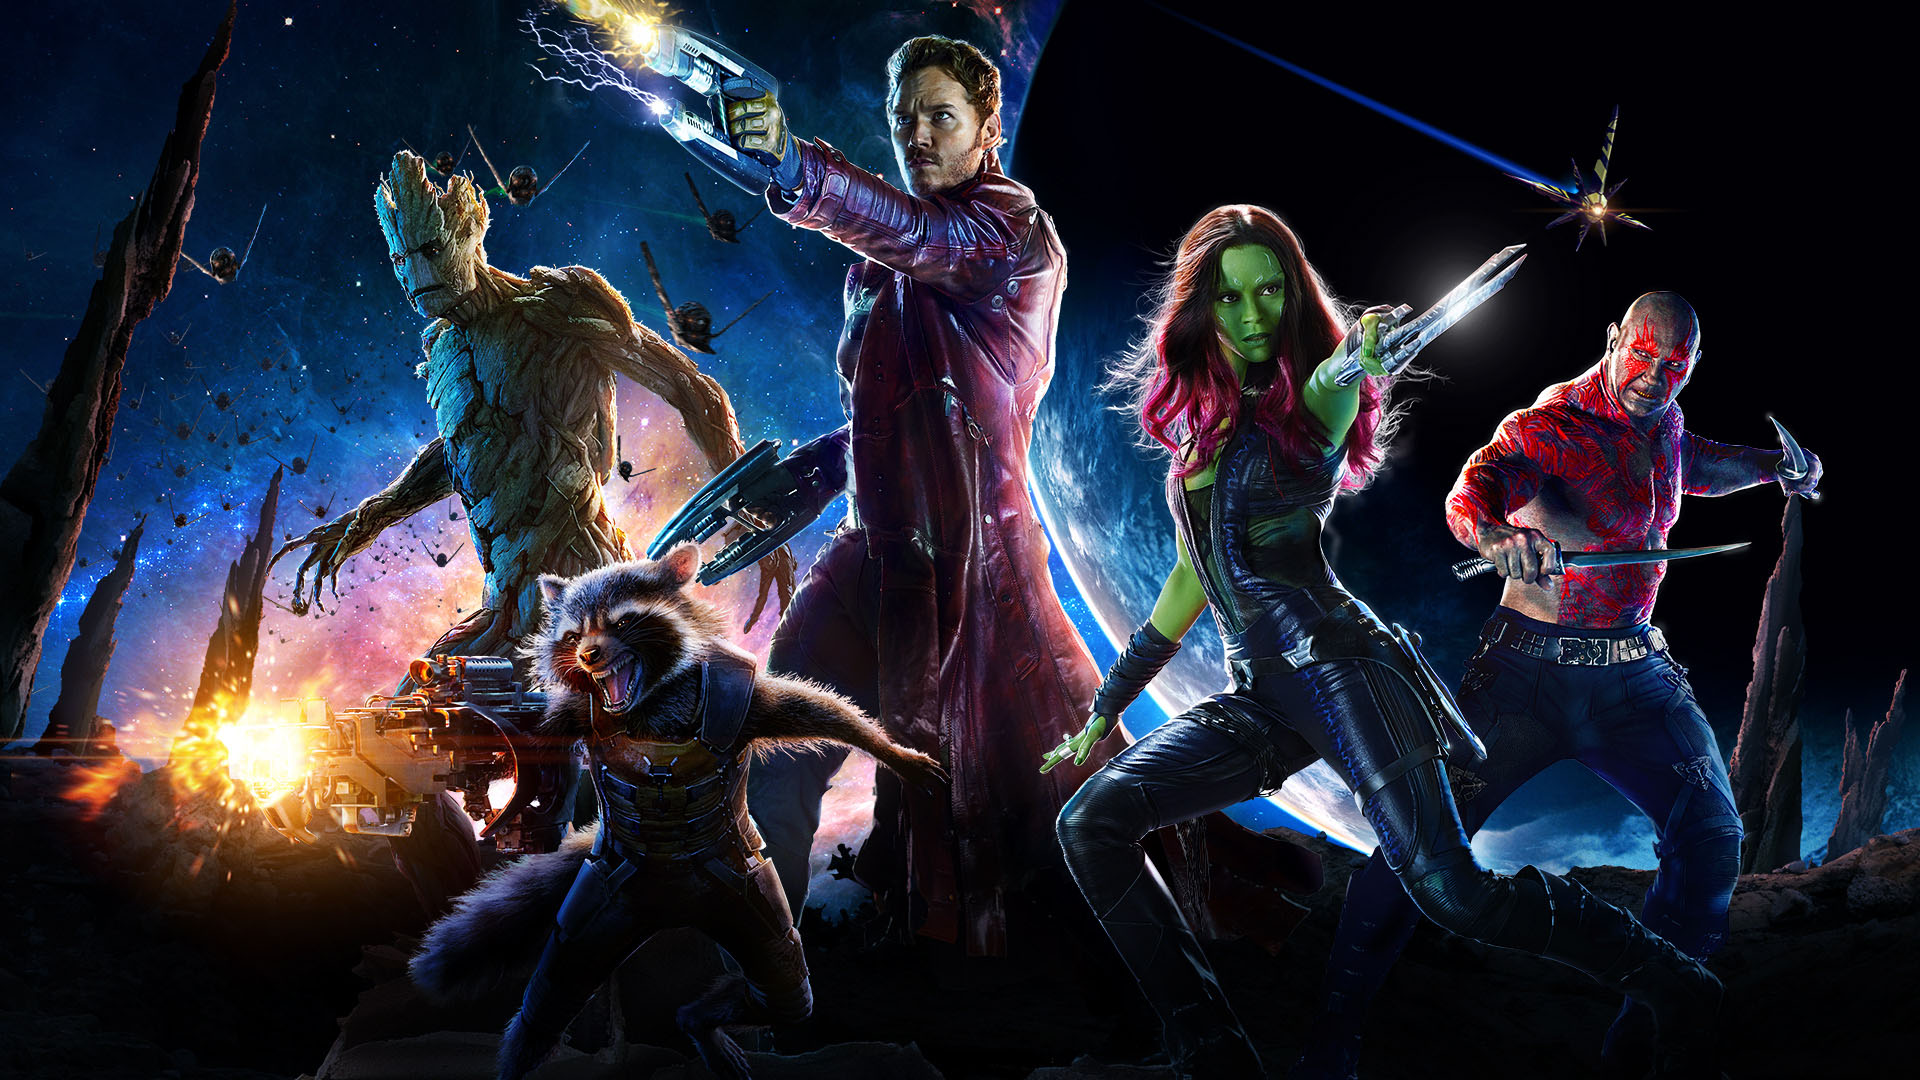 Guardians-of-the-Galaxy-StarLord-Ship-Movies-wallpaper-wp36012054